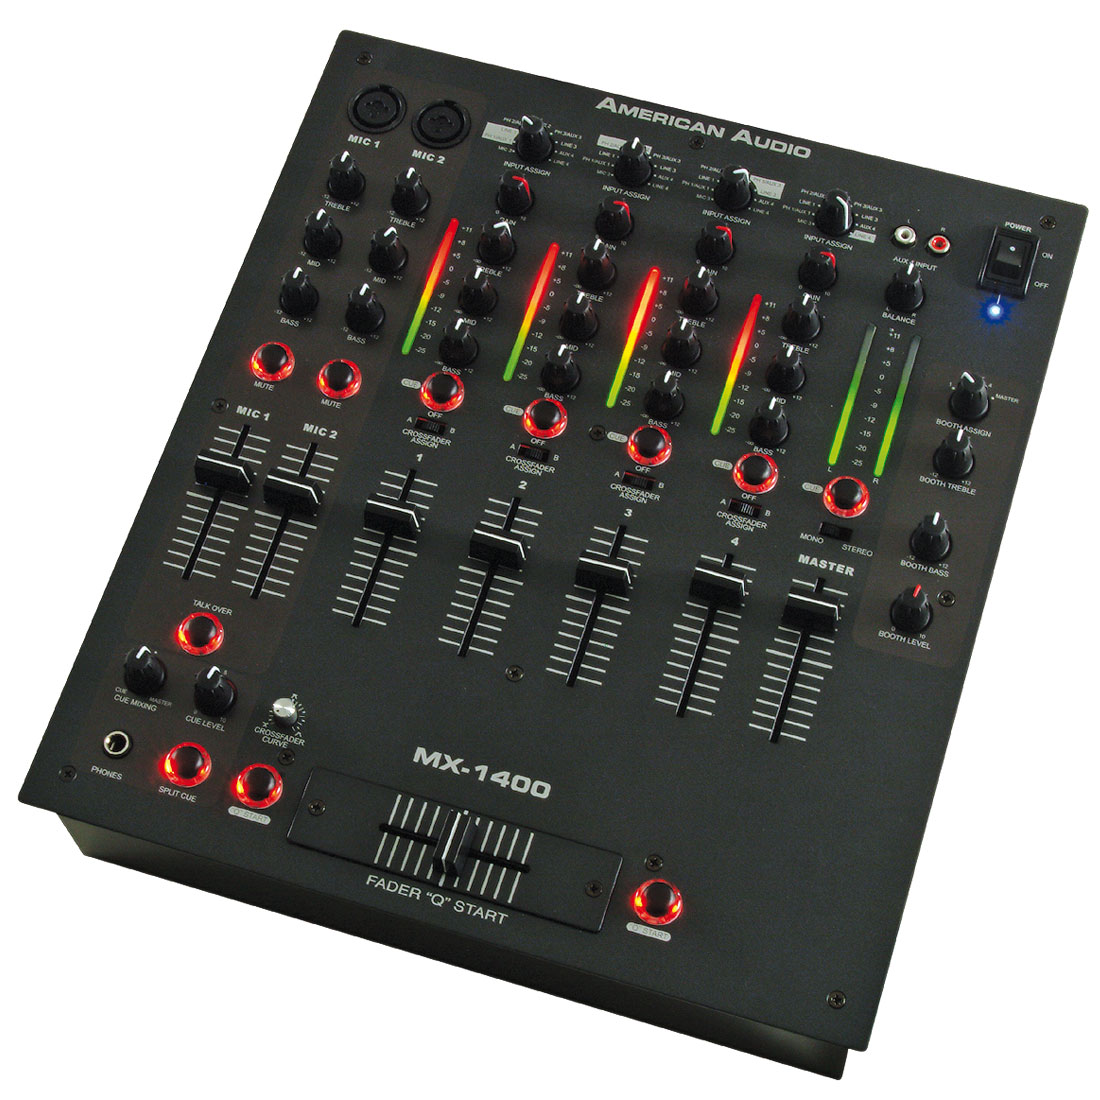 MX-1400 Club mixer